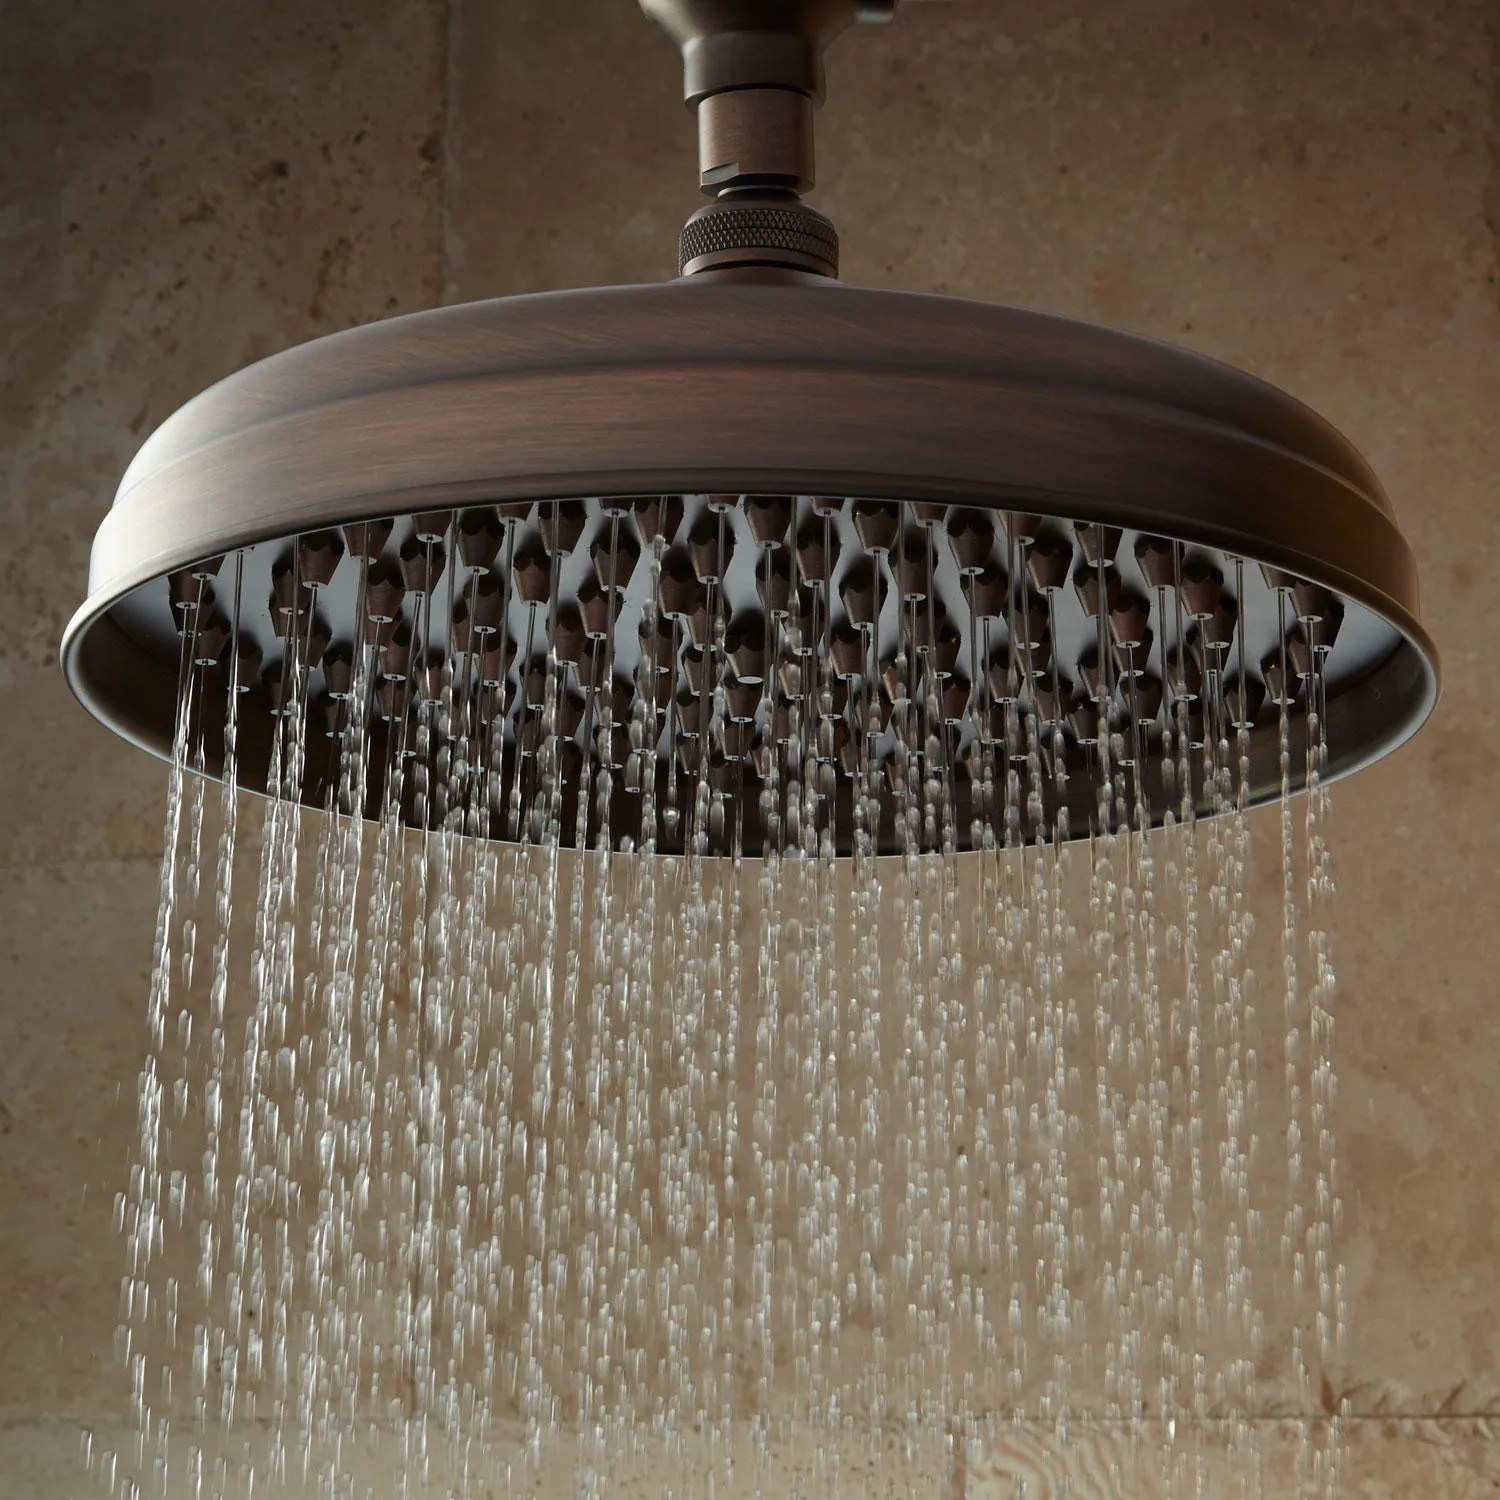 Lambert Rainfall Nozzle Shower Head With Ornate Arm  Bathroom